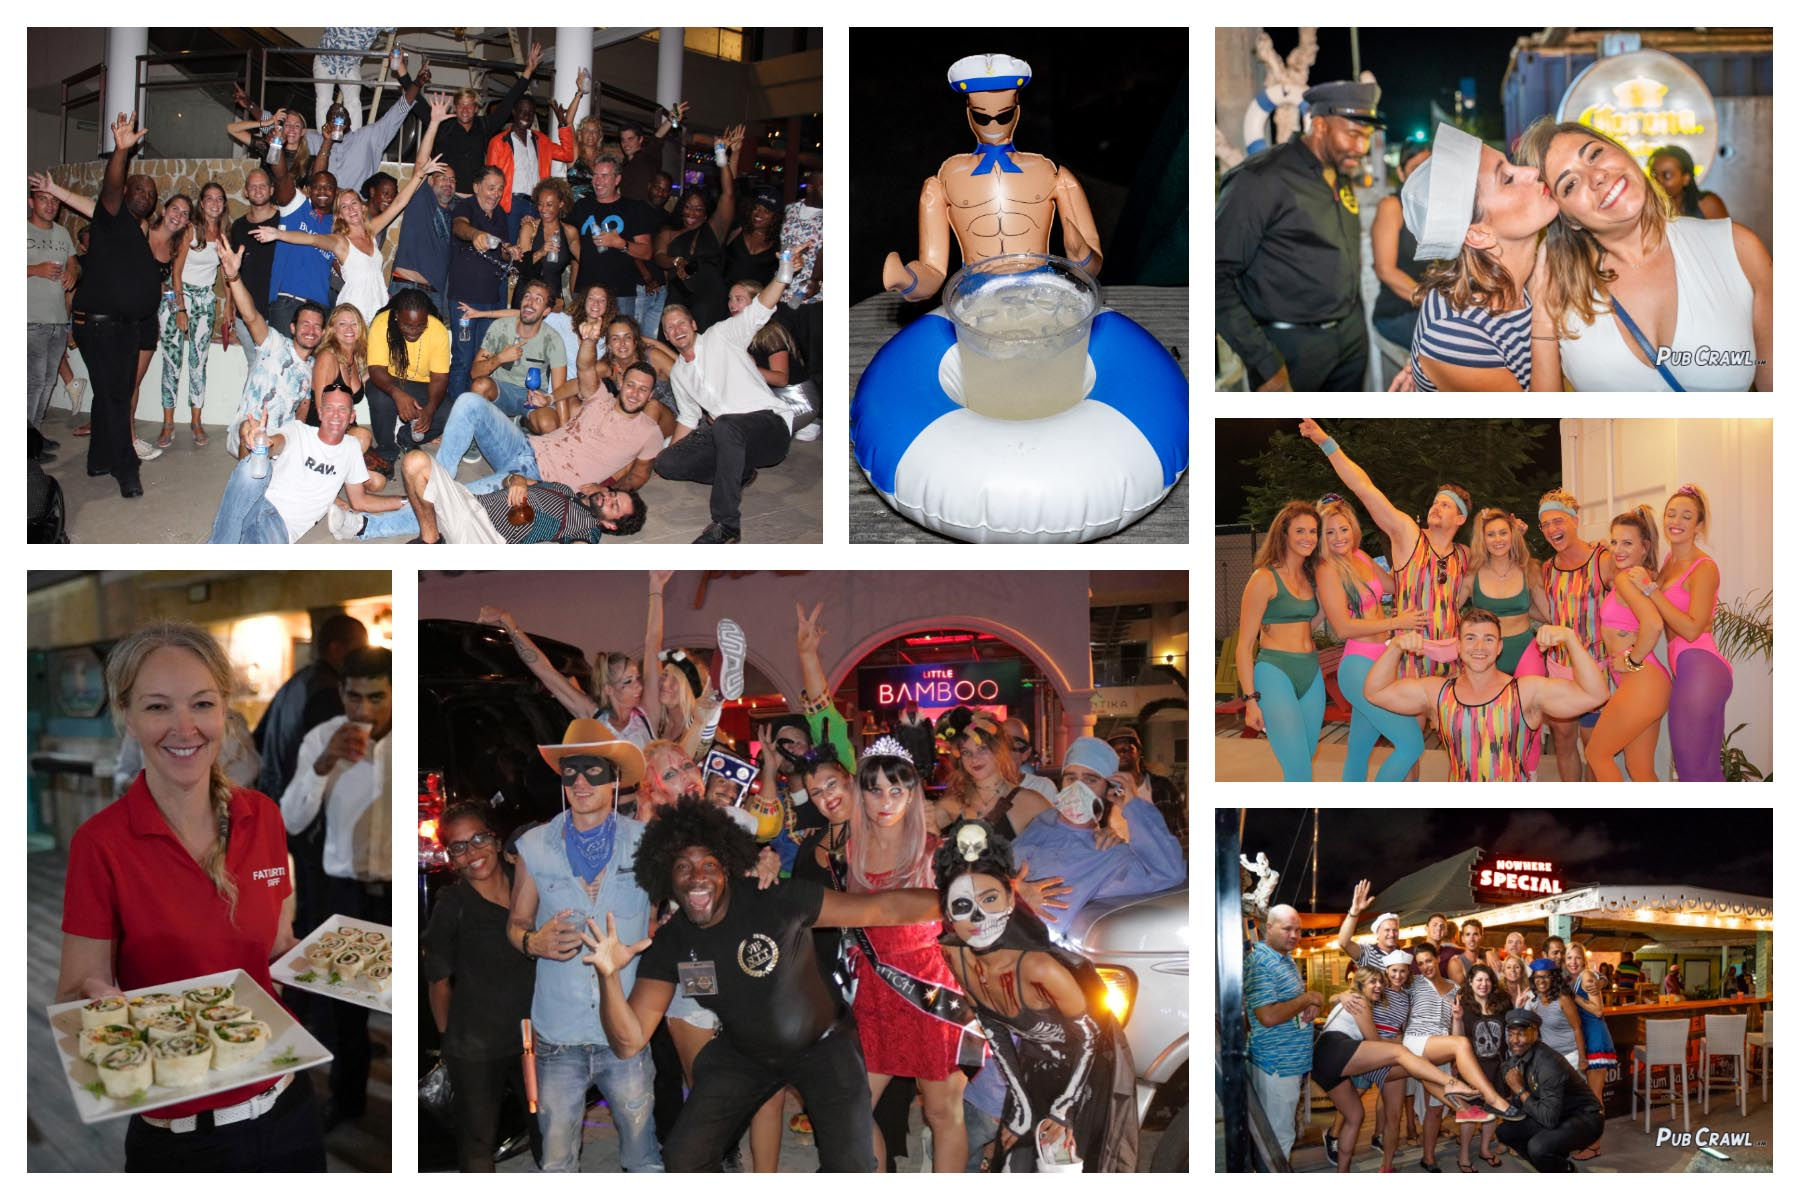 Party in St. Maarten - St. Martin - Party like a local!